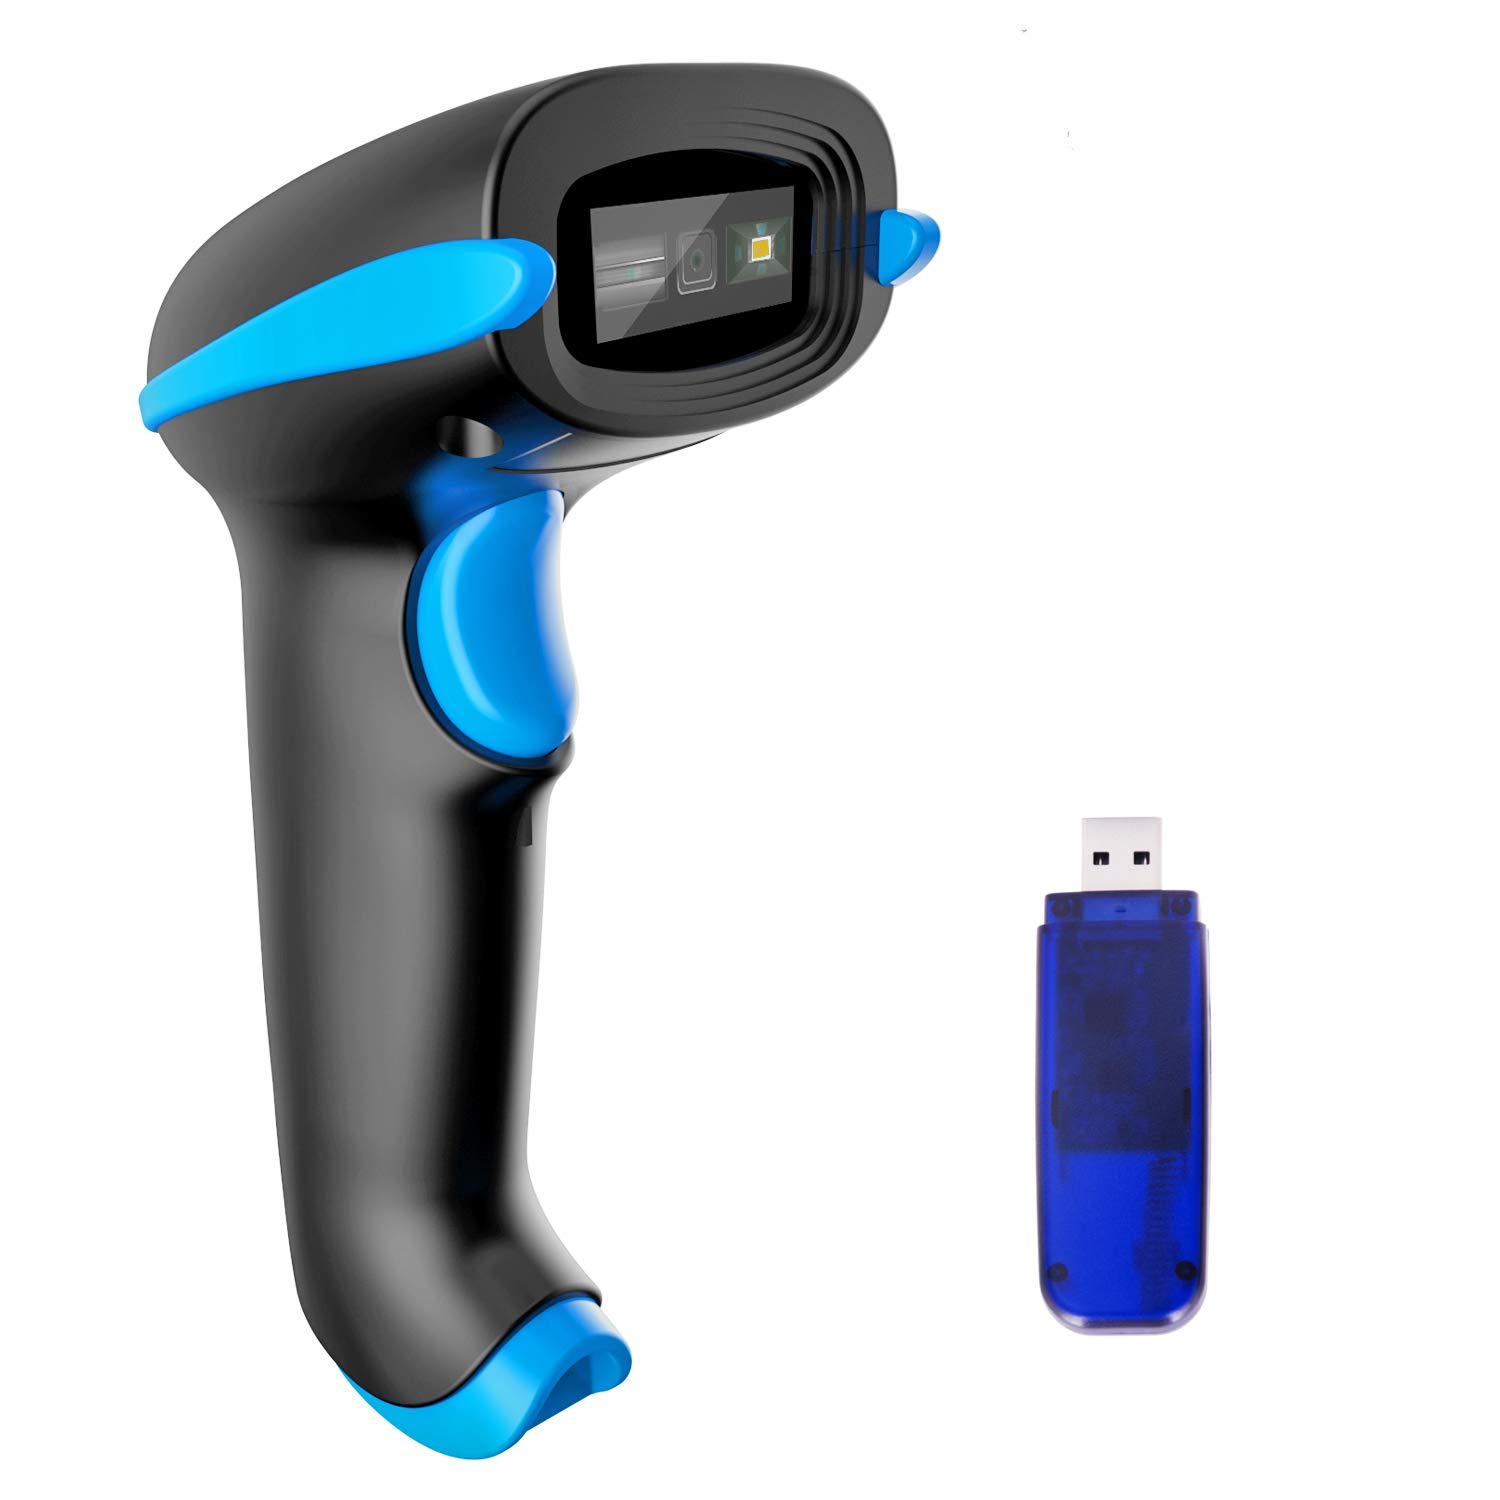 NADAMOO 2D Wireless Barcode Scanner (2-in-1 Wireless & USB2.0 Wired) 1D QR PDF417 Data Matrix Bar Code Scanner Cordless CMOS Image Barcode Reader for Mobile Payment Computer Screen